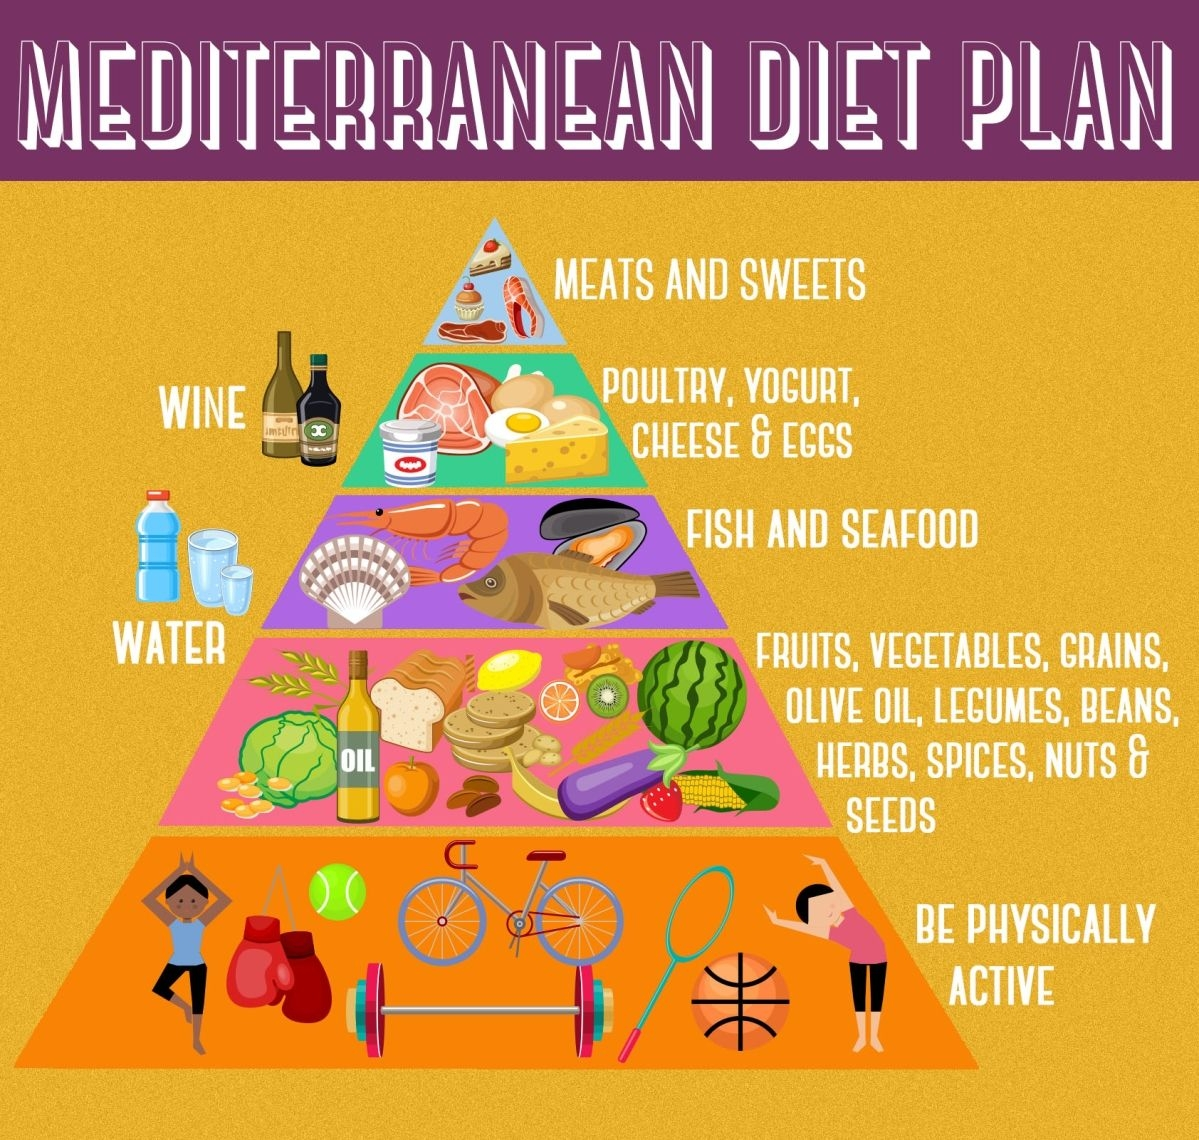 Mediterranean diet named No. 1 eating plan for 2019